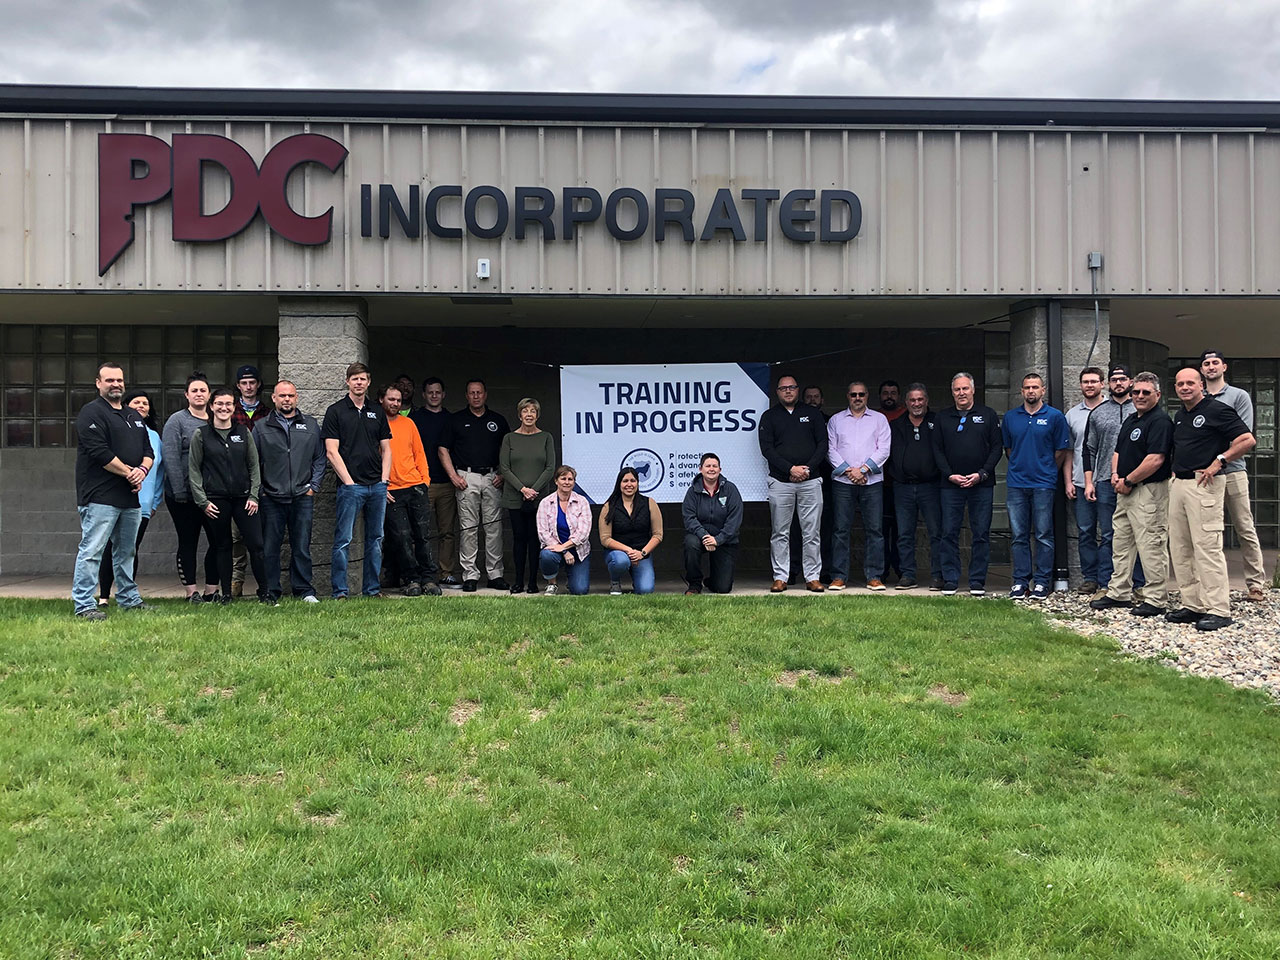 PDC Inc in Springfield team completed active shooter training